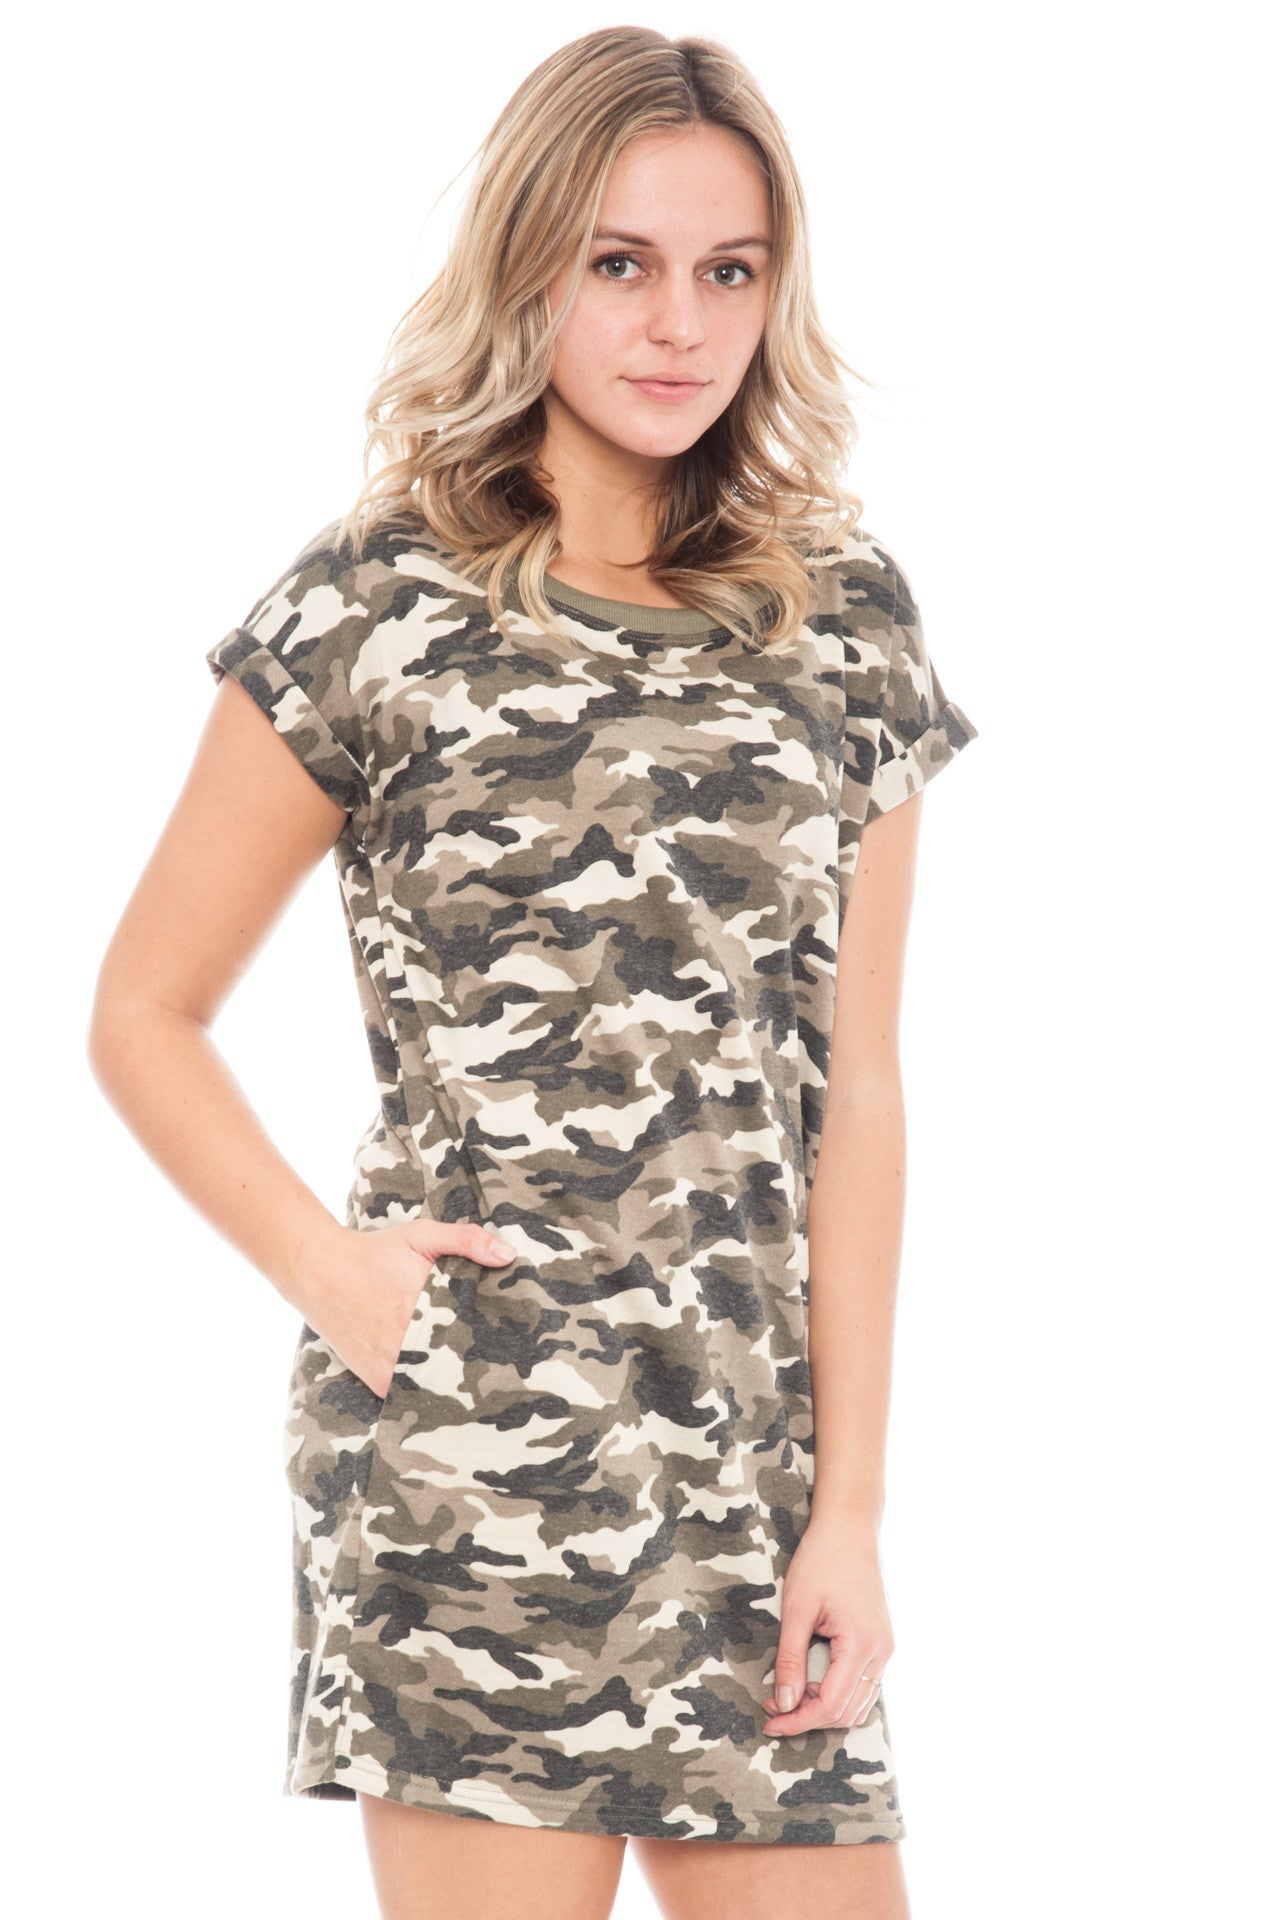 Dress - Camo T-shirt by Ellison